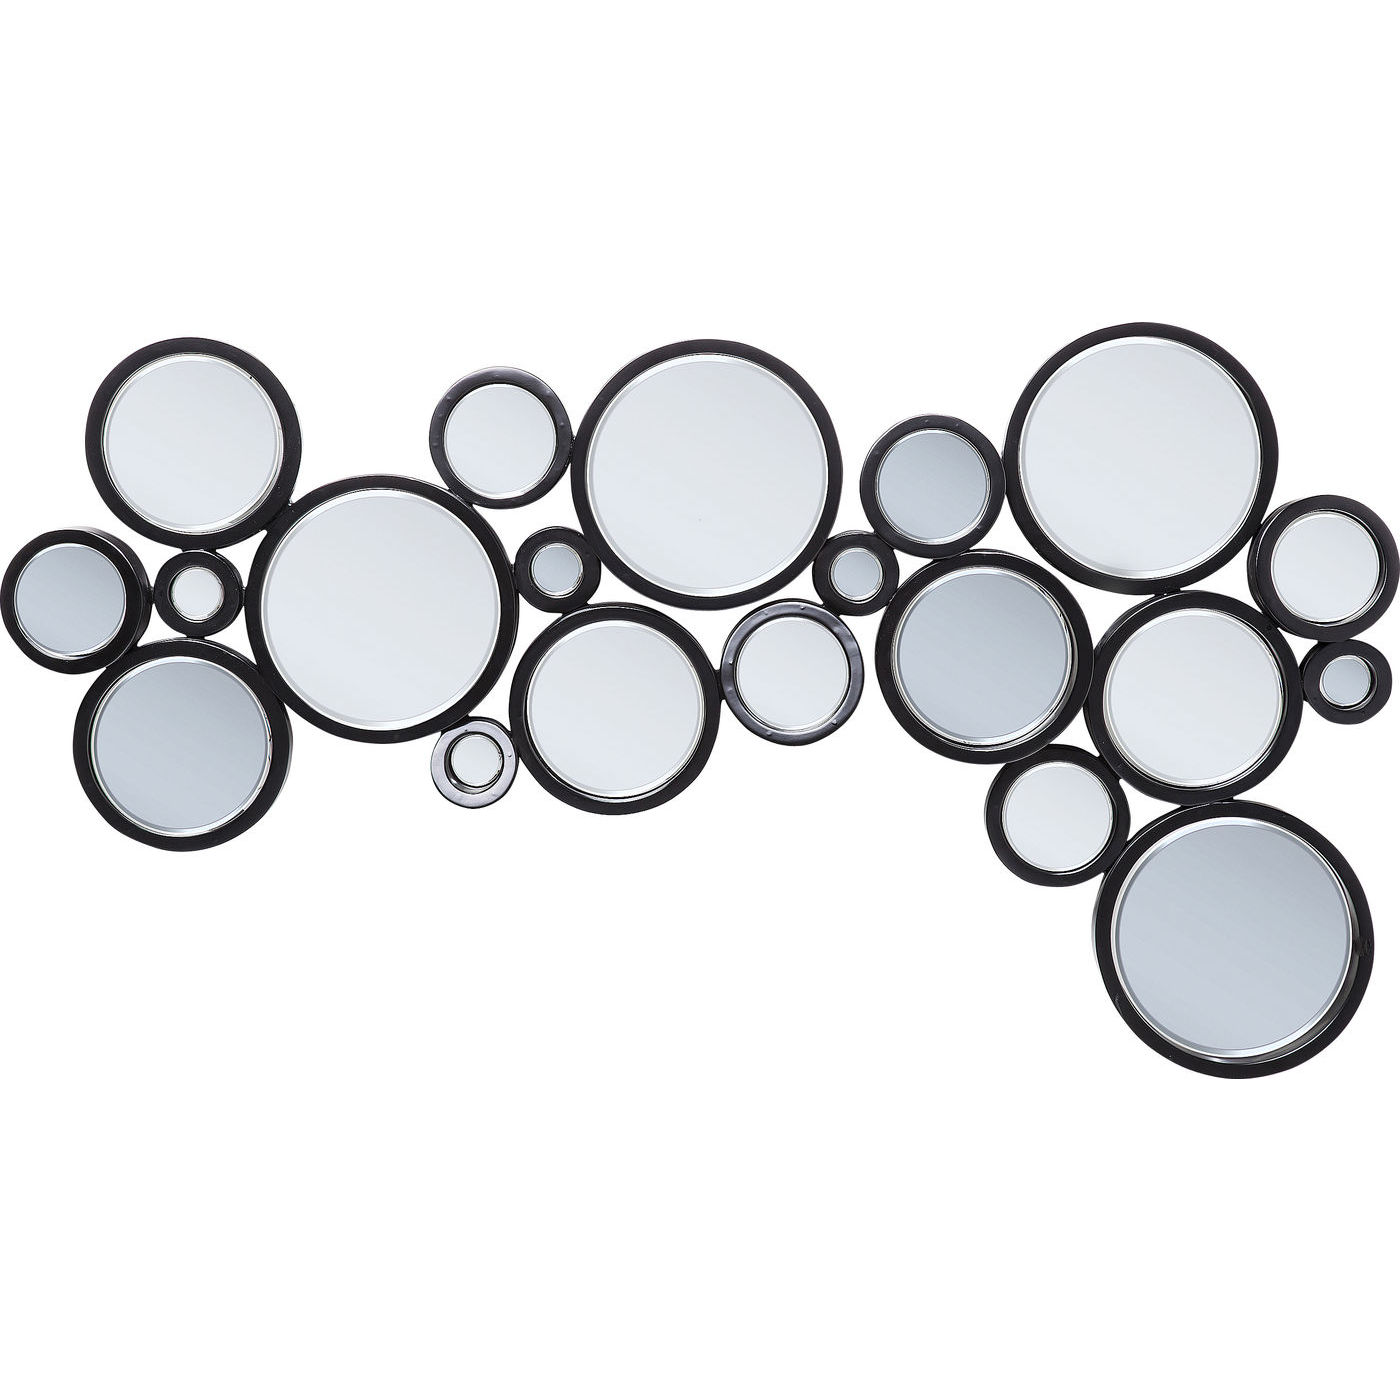 Image of   Kare Design Spejl, Circle Black 120x70cm